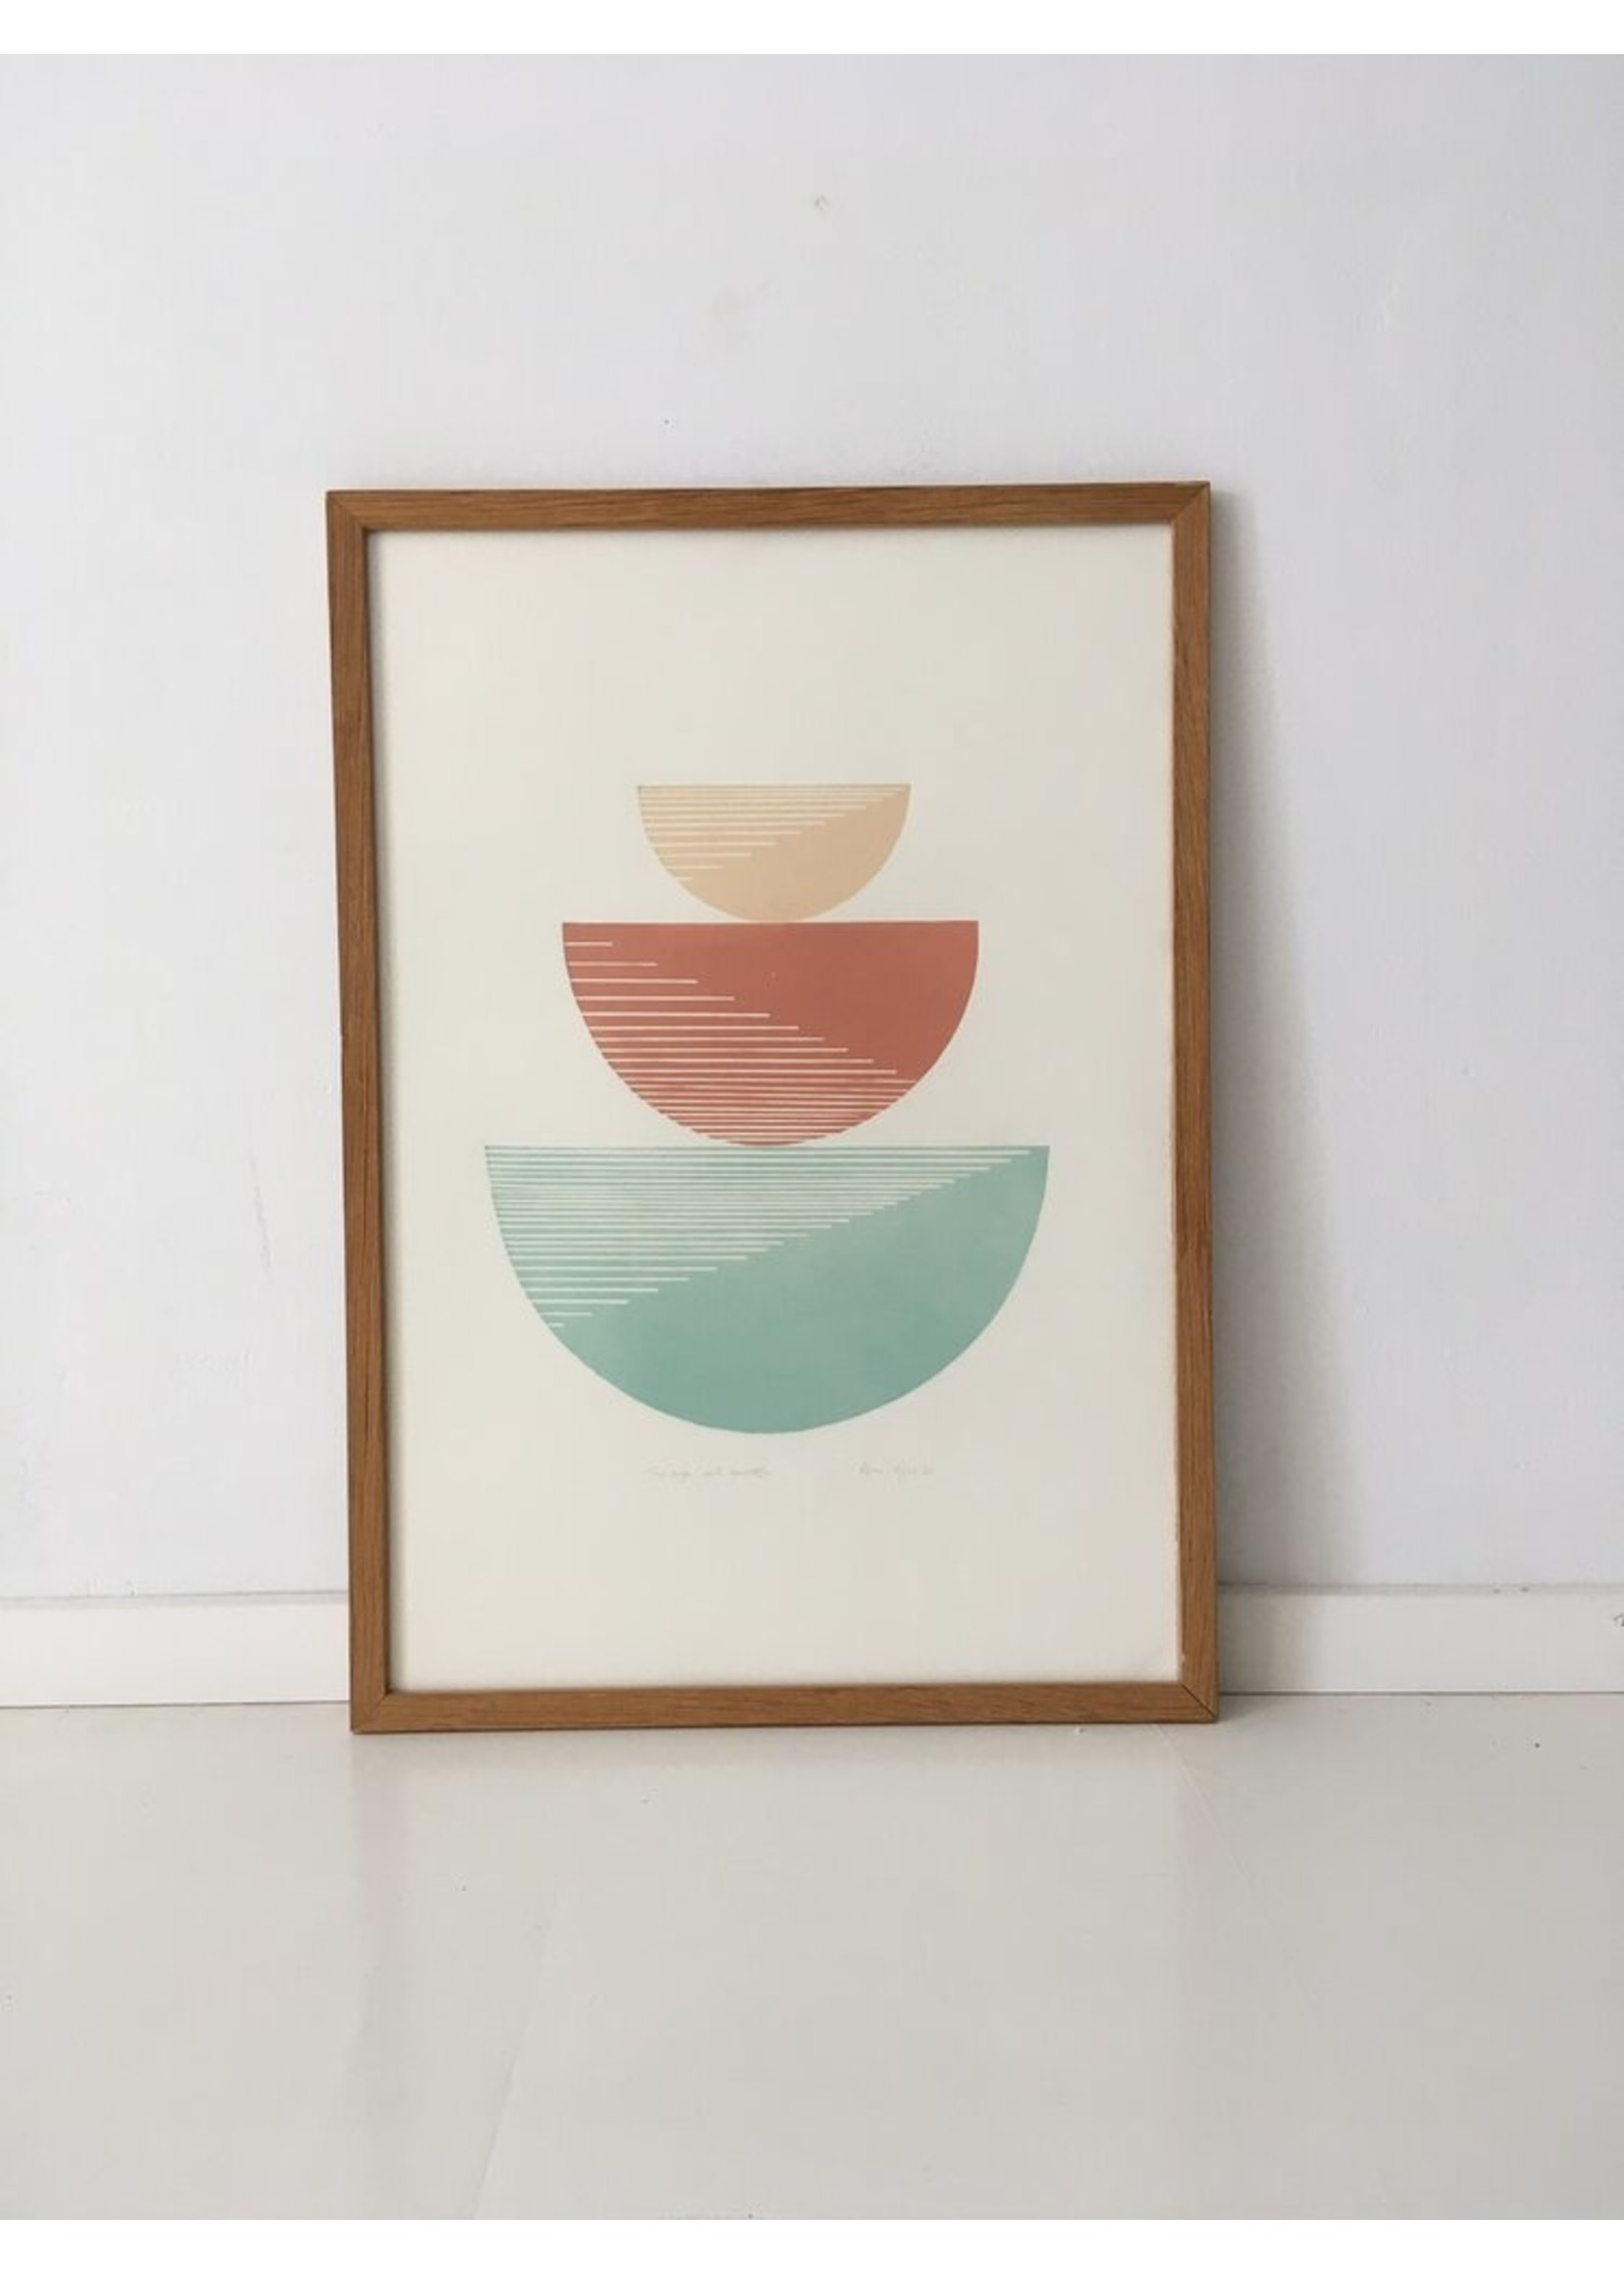 Bcntku Art Studio Oy Bcntku Art Studio Oy The sage and terracotta. Study of balance with gradient triangles Print